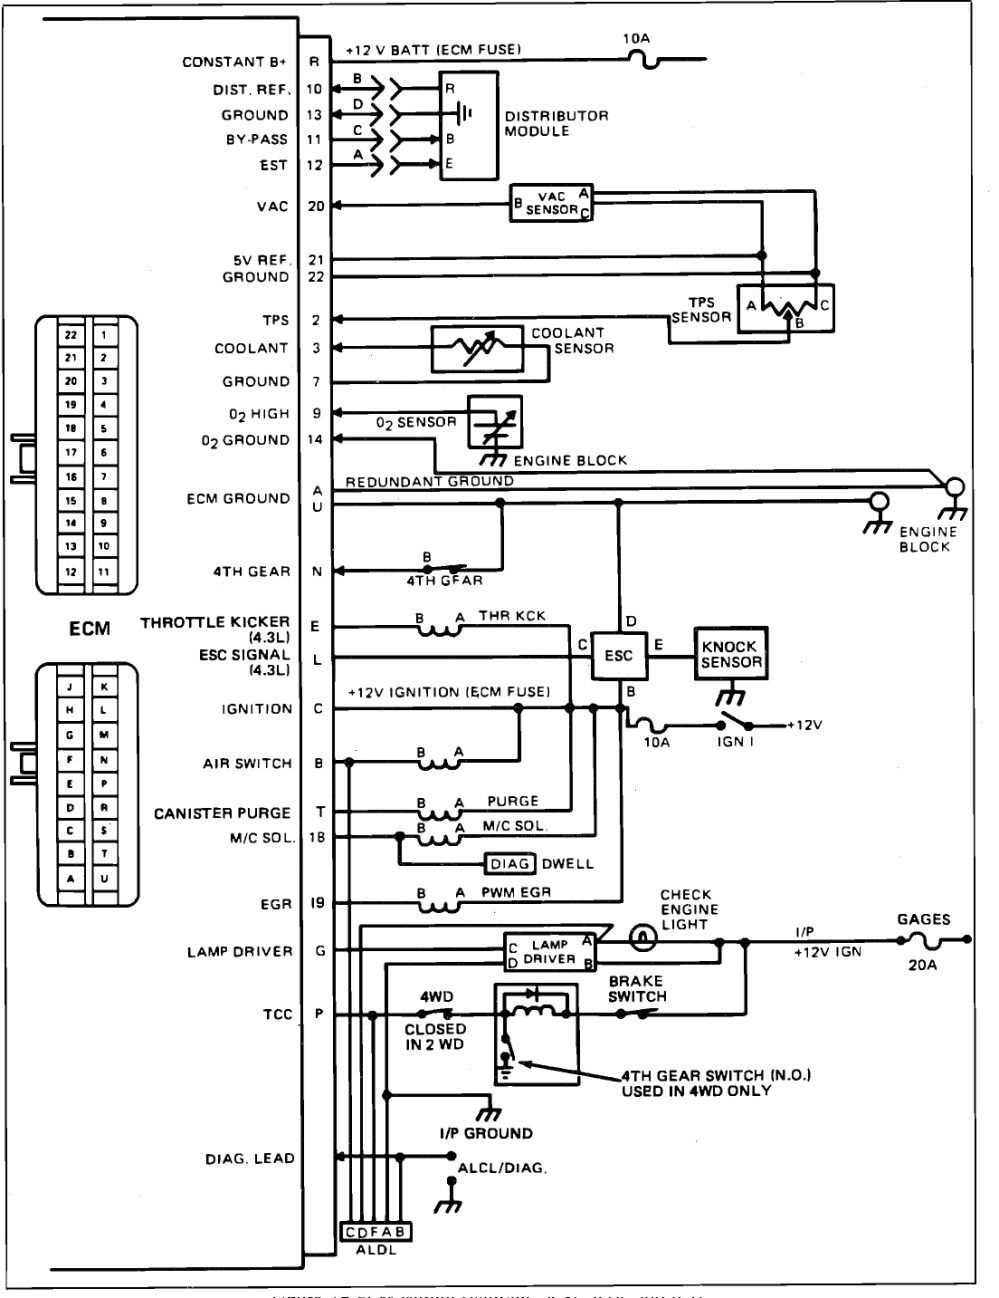 medium resolution of 89 chevy fuse box diagram wiring diagram name 2000 chevy express fuse block diagram 89 g20